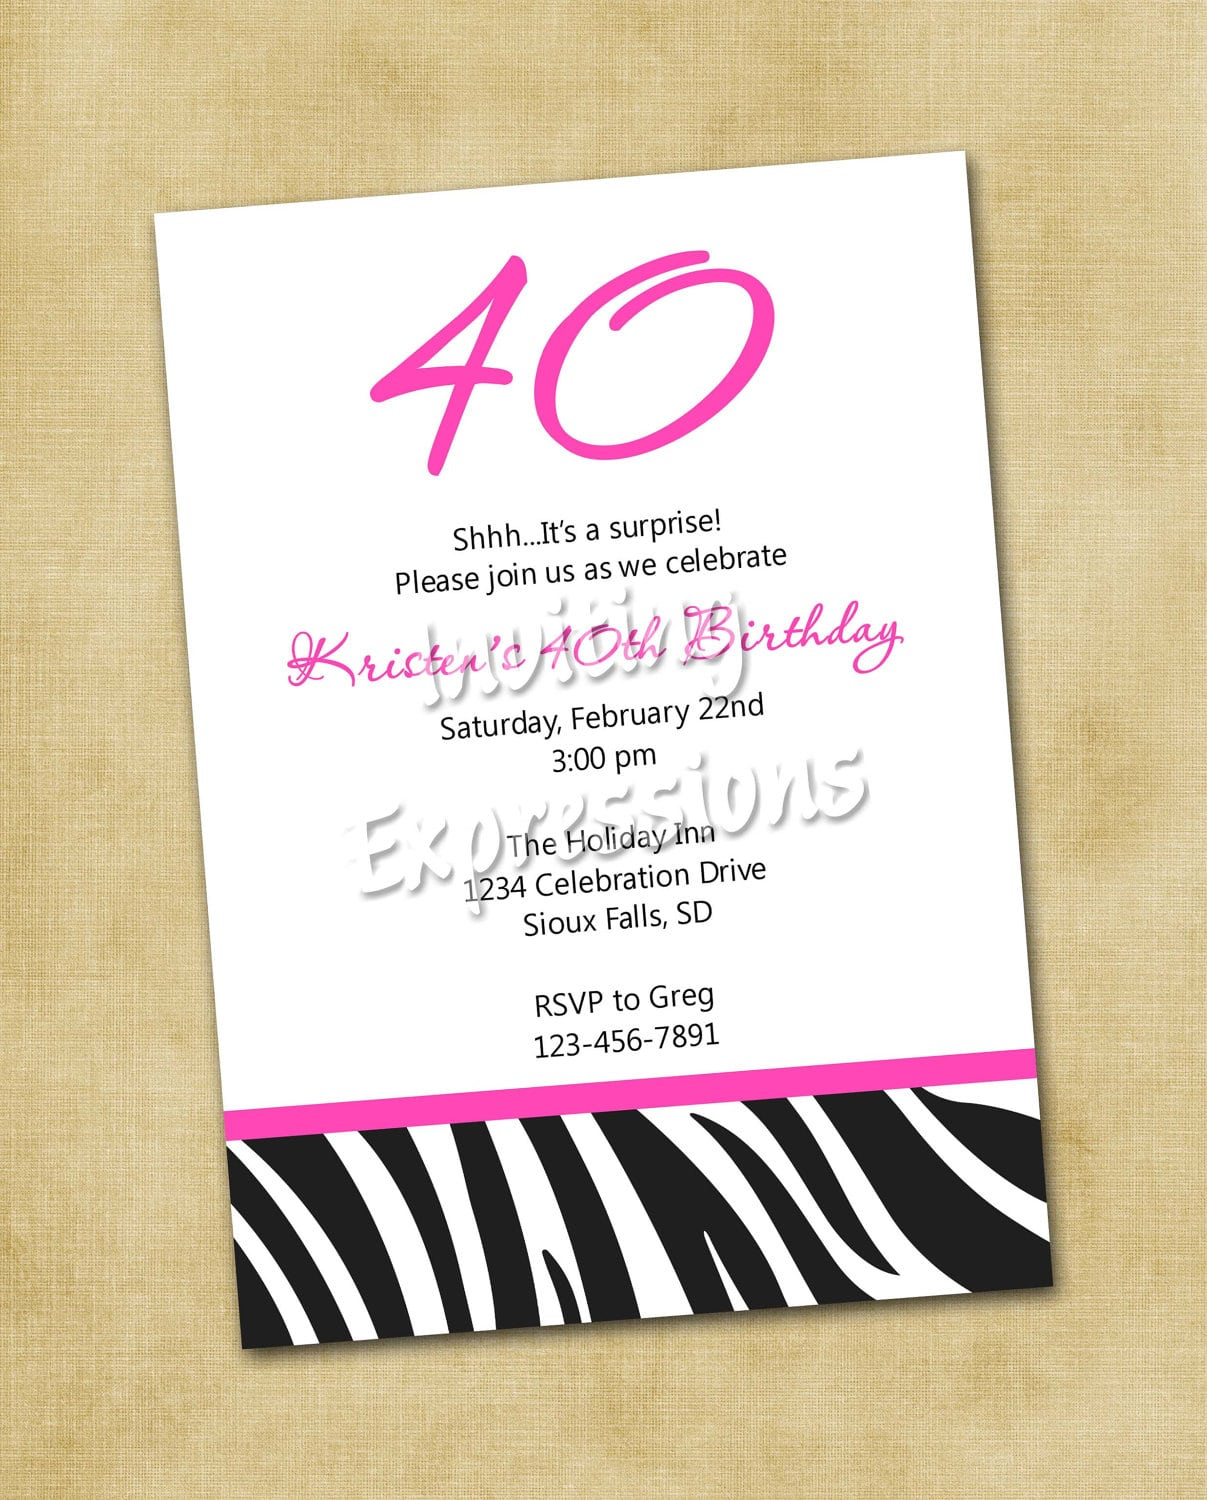 Funny 40th birthday party invitation wording mickey mouse 40th birthday party invitation wording funny 40th birthday party invitation wording funny stopboris Images